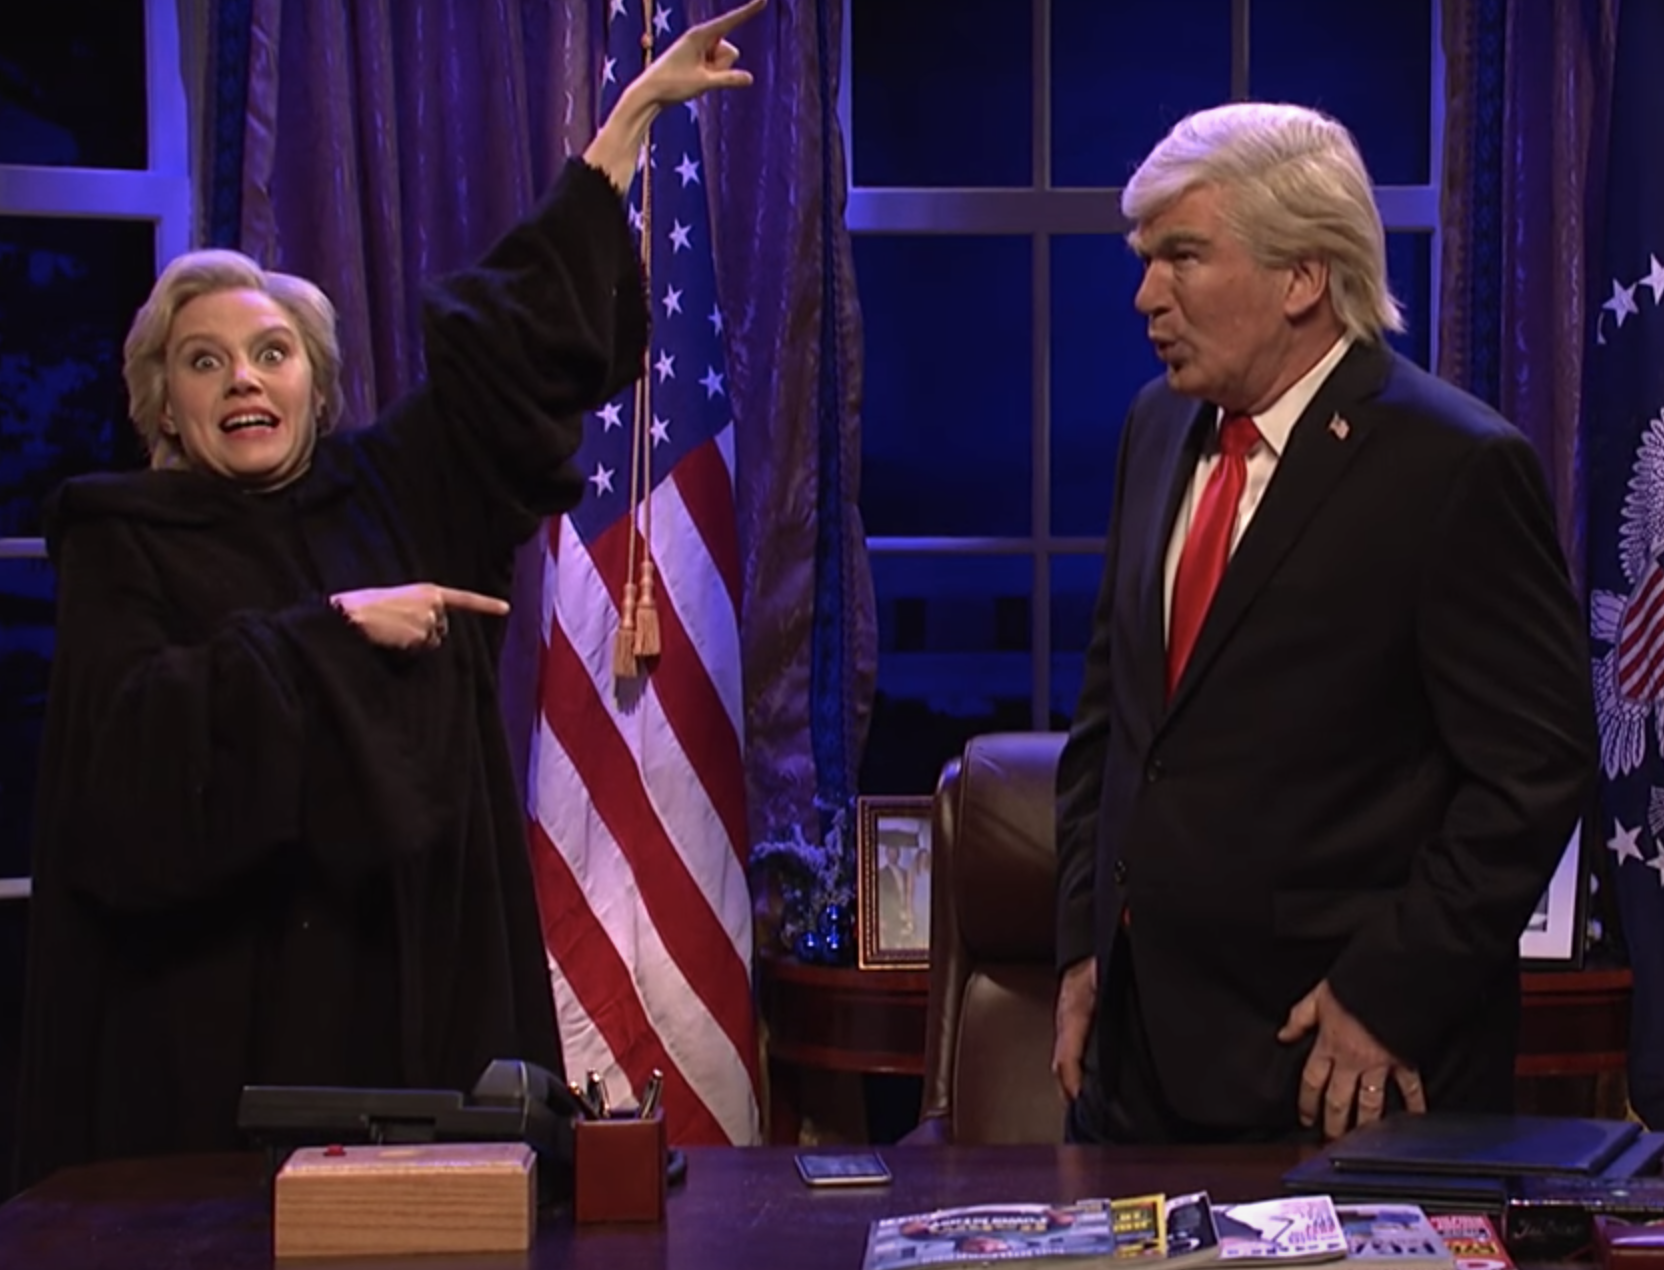 'SNL' Christmas Carol Parody Returns Baldwin as Trump